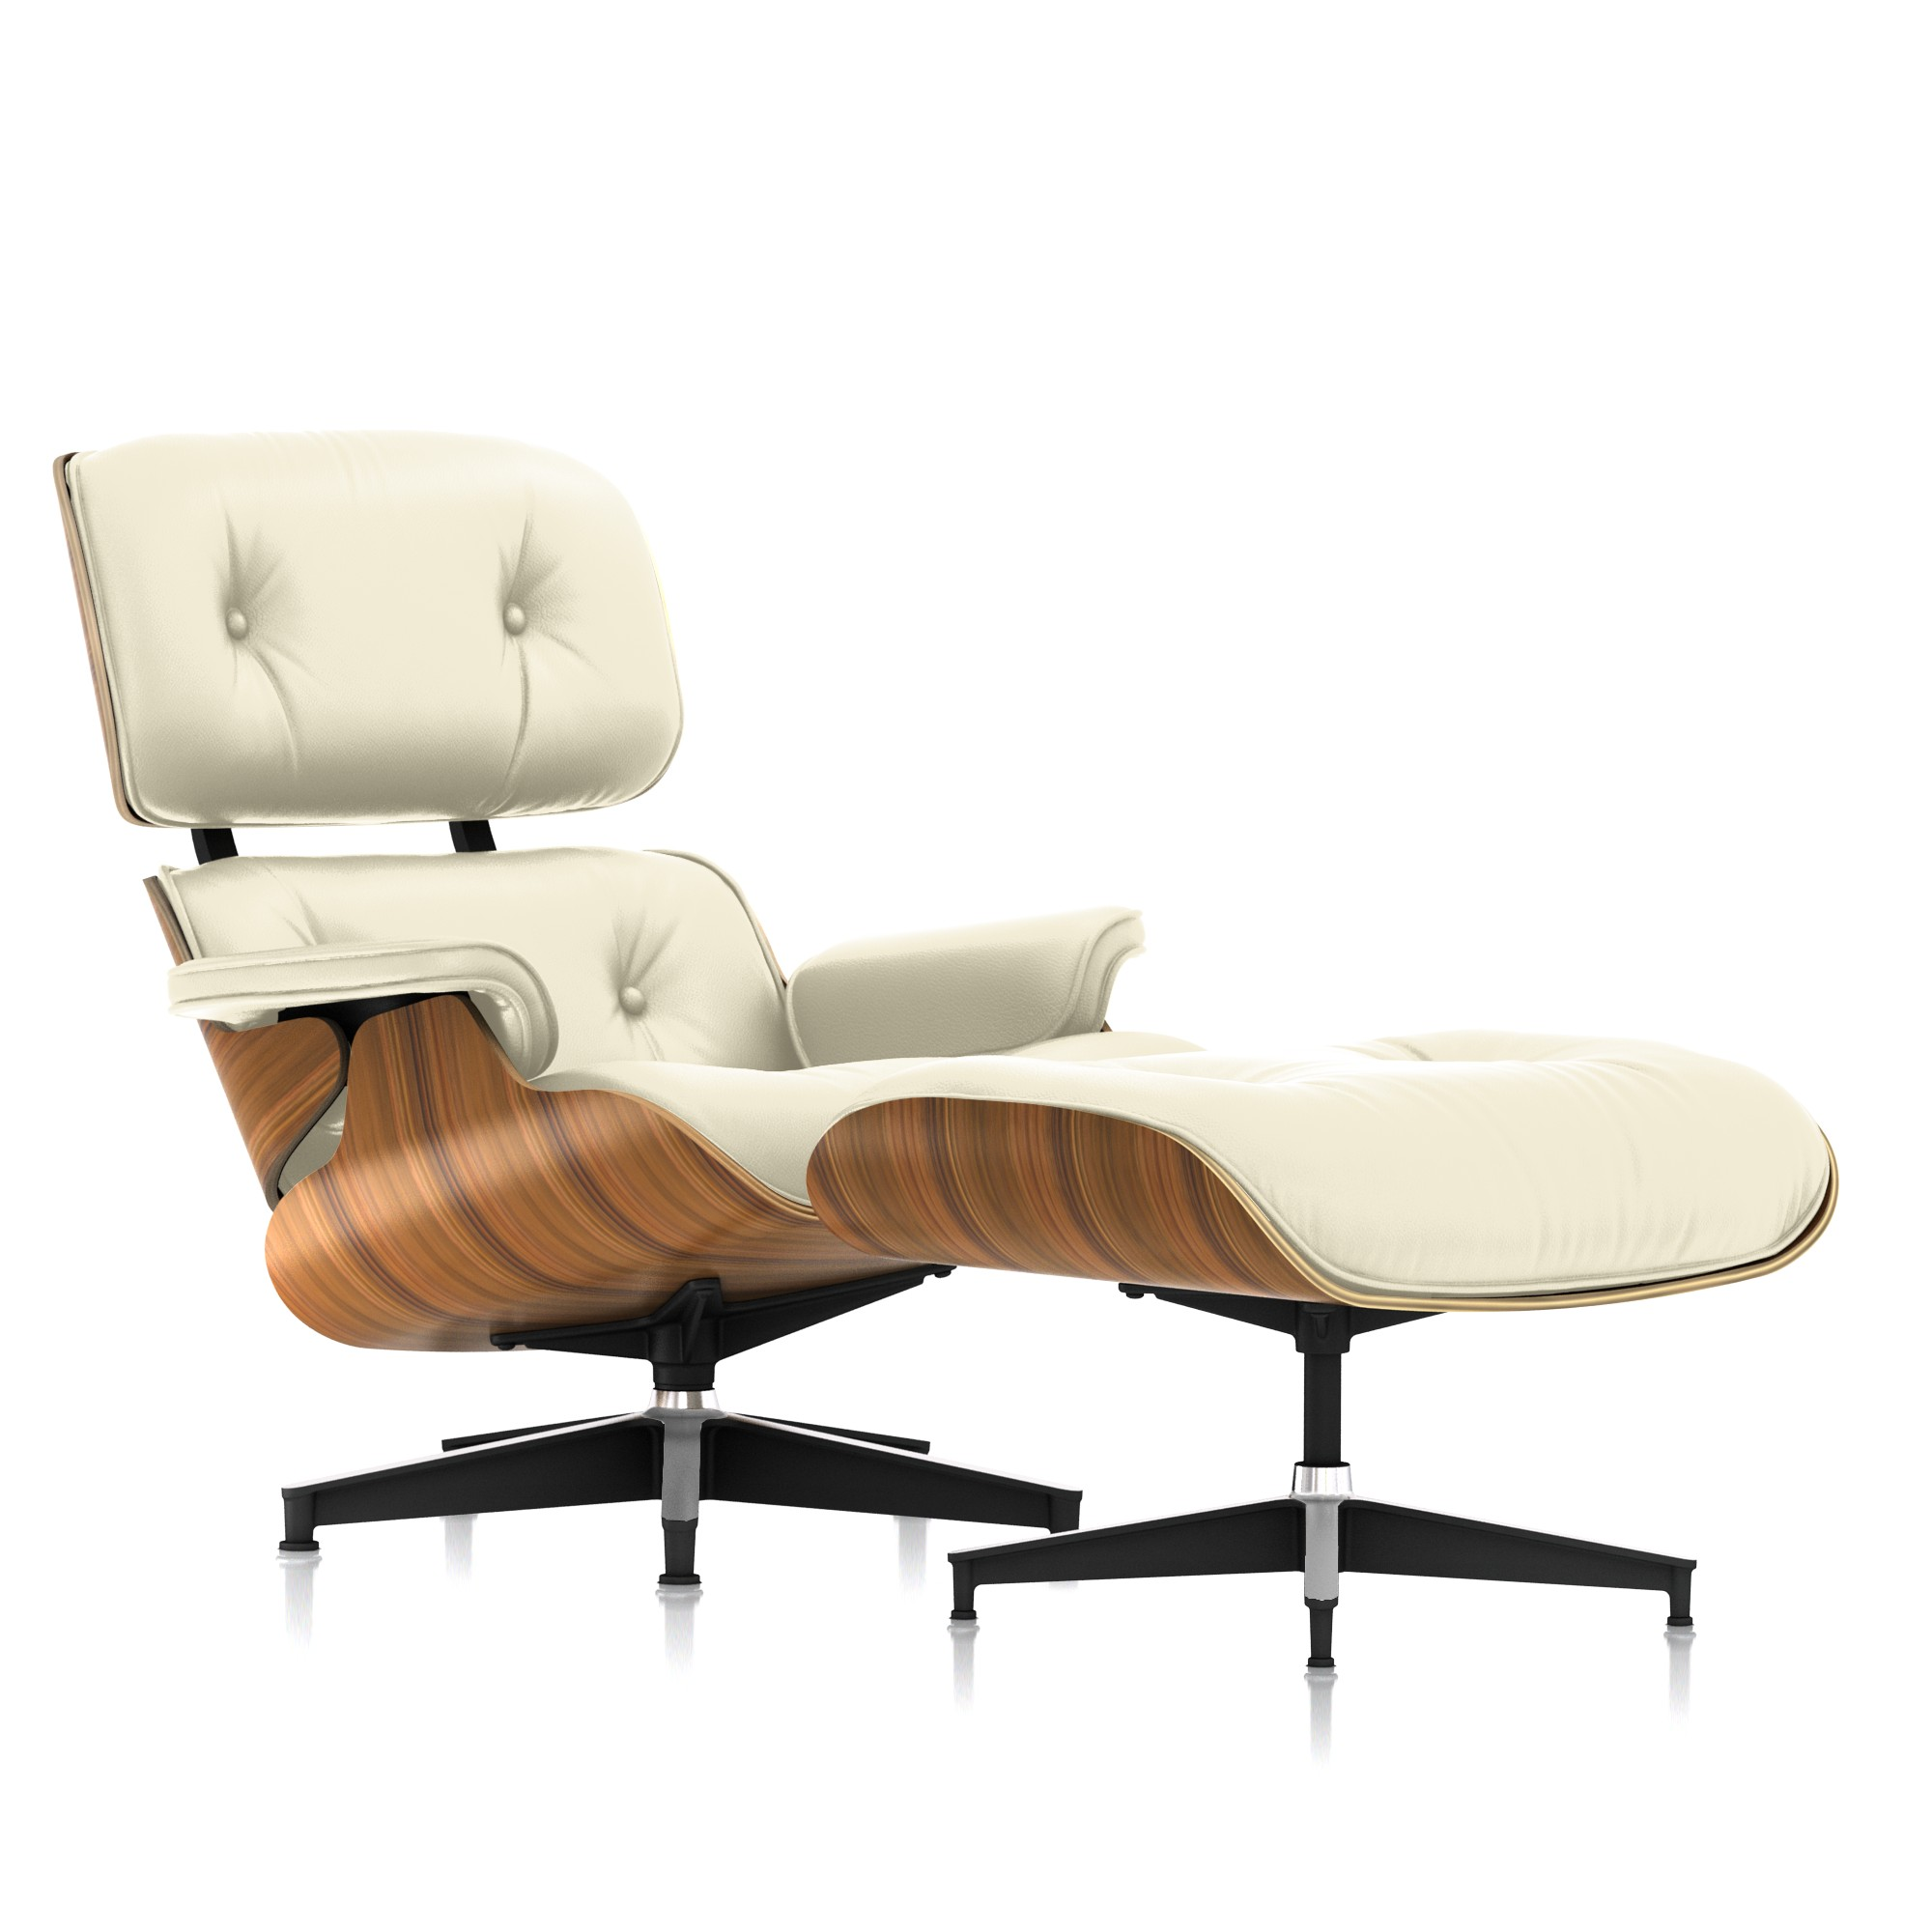 Eames Lounge Chair and Ottoman in Ivory MCL Leather Tall by Herman Miller